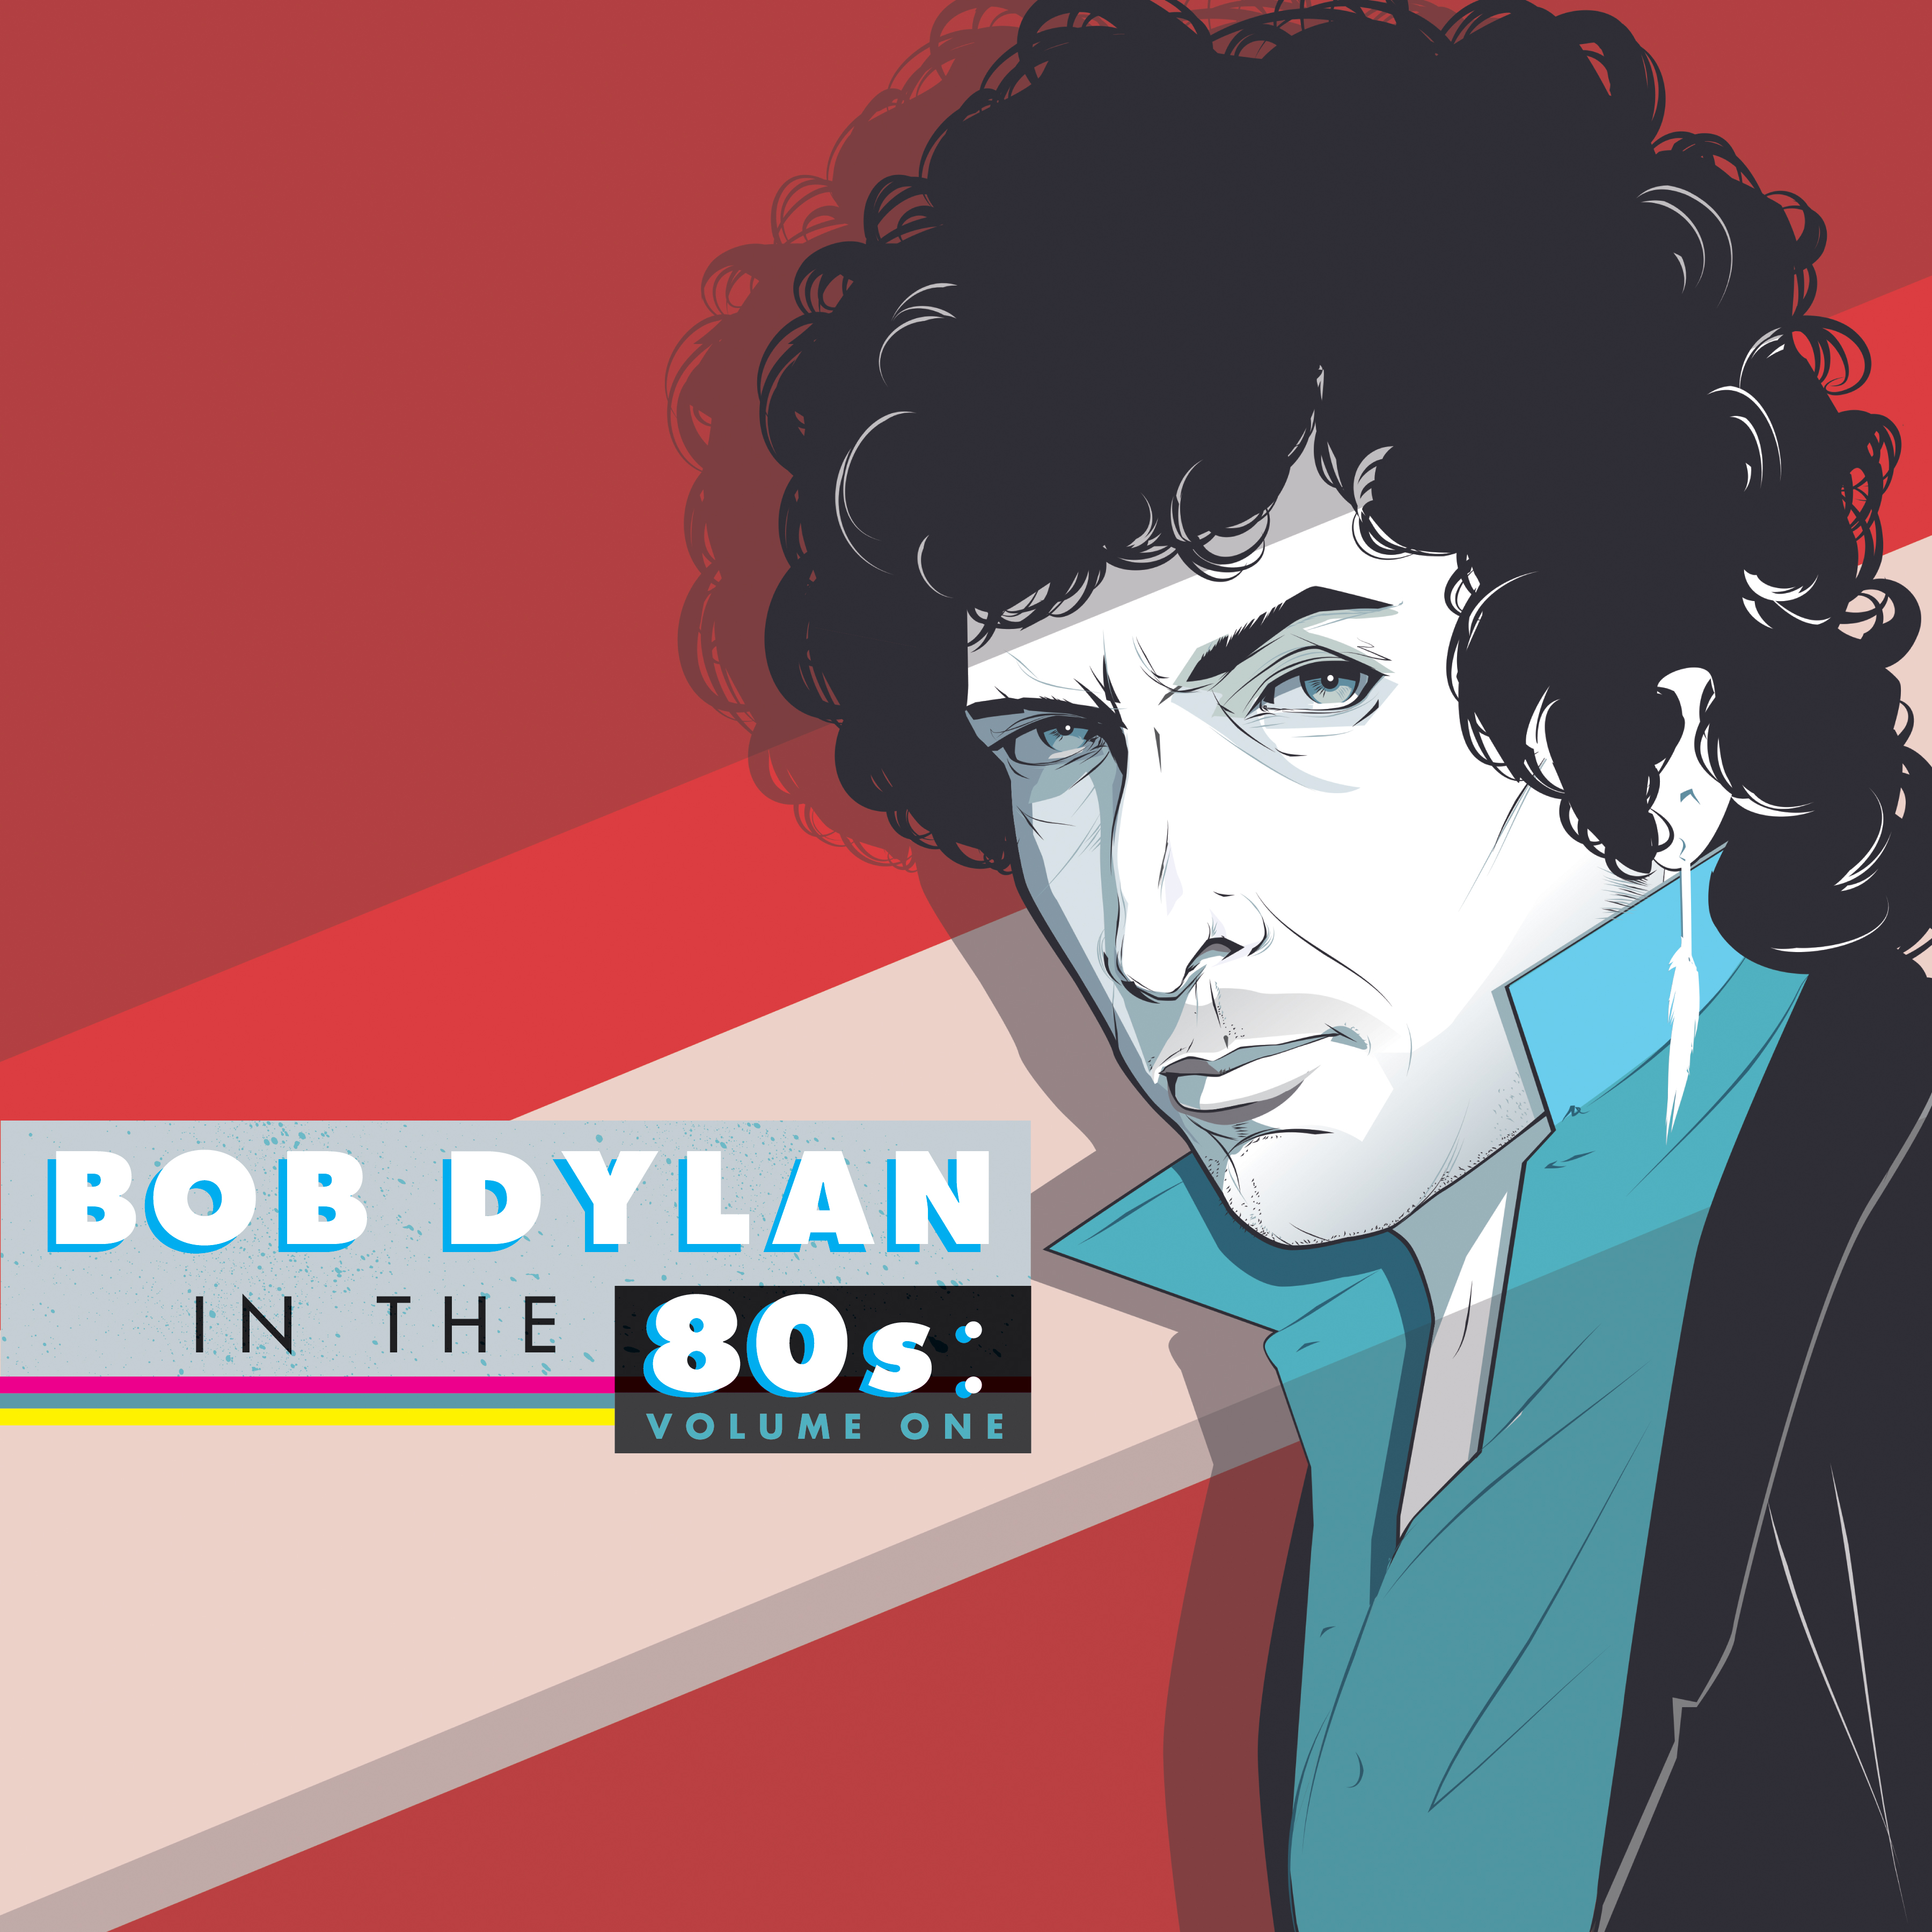 Bob Dylan in the 80s: Volume One CD